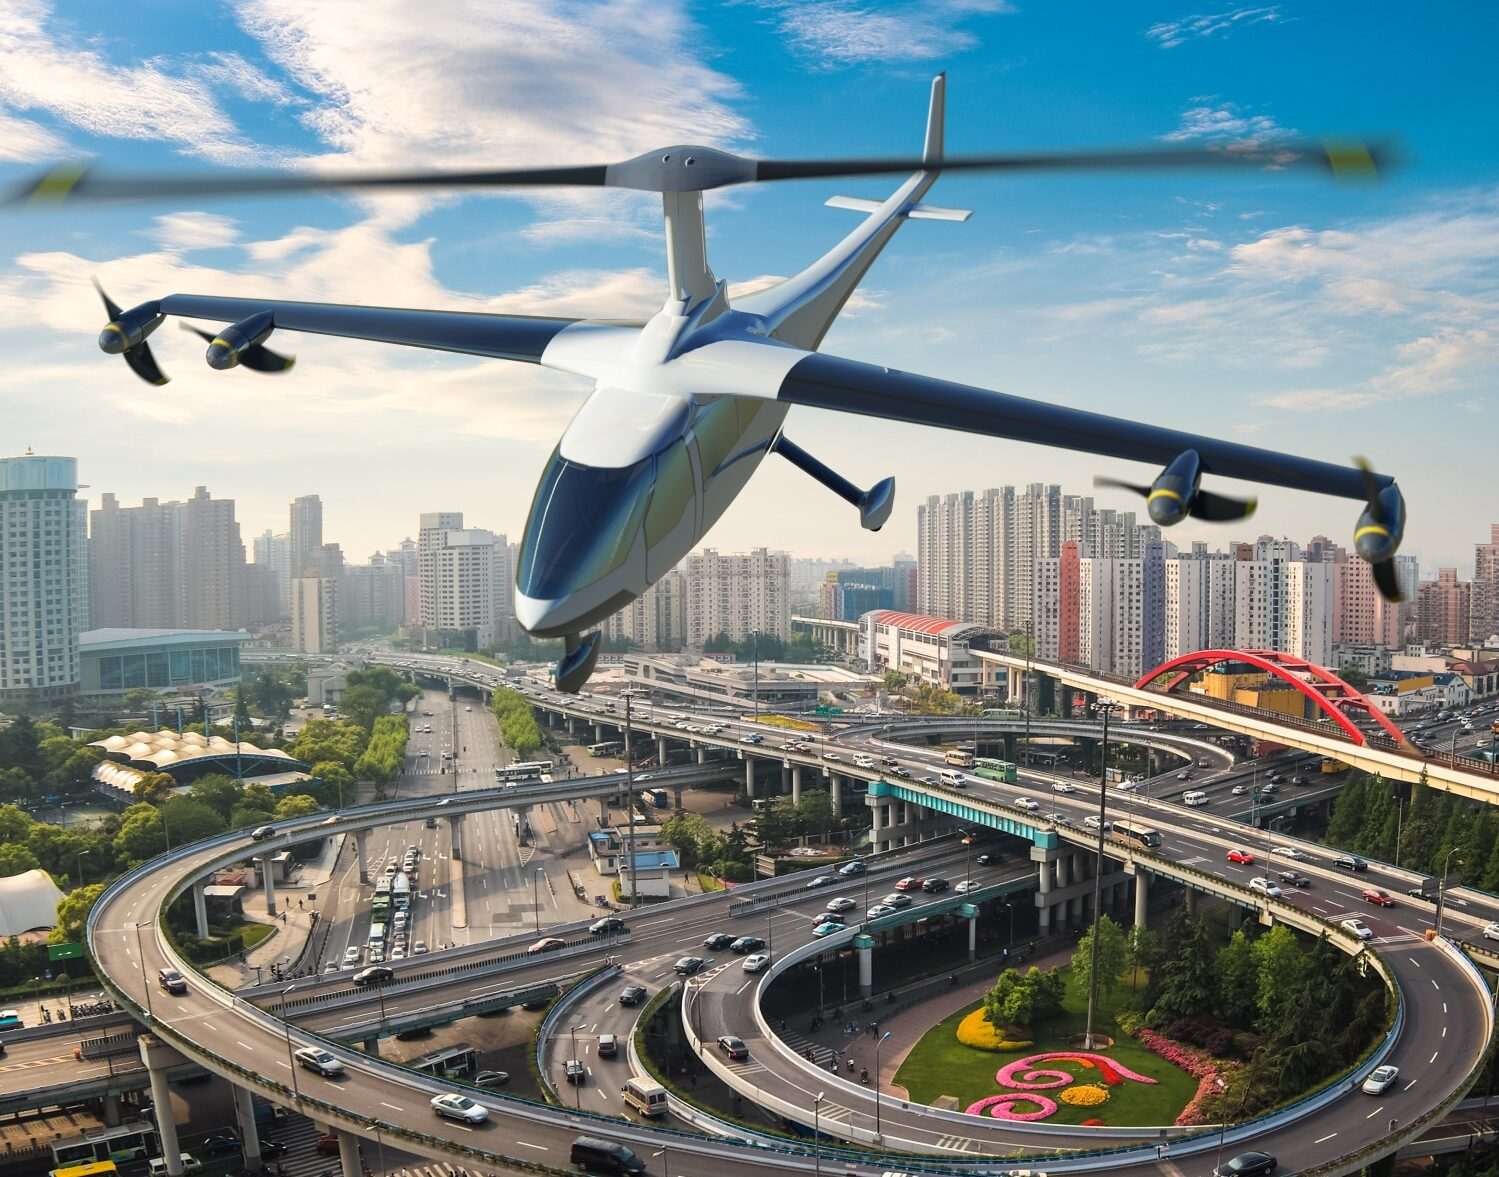 How the more electric aircraft will help to transition to a greener futur